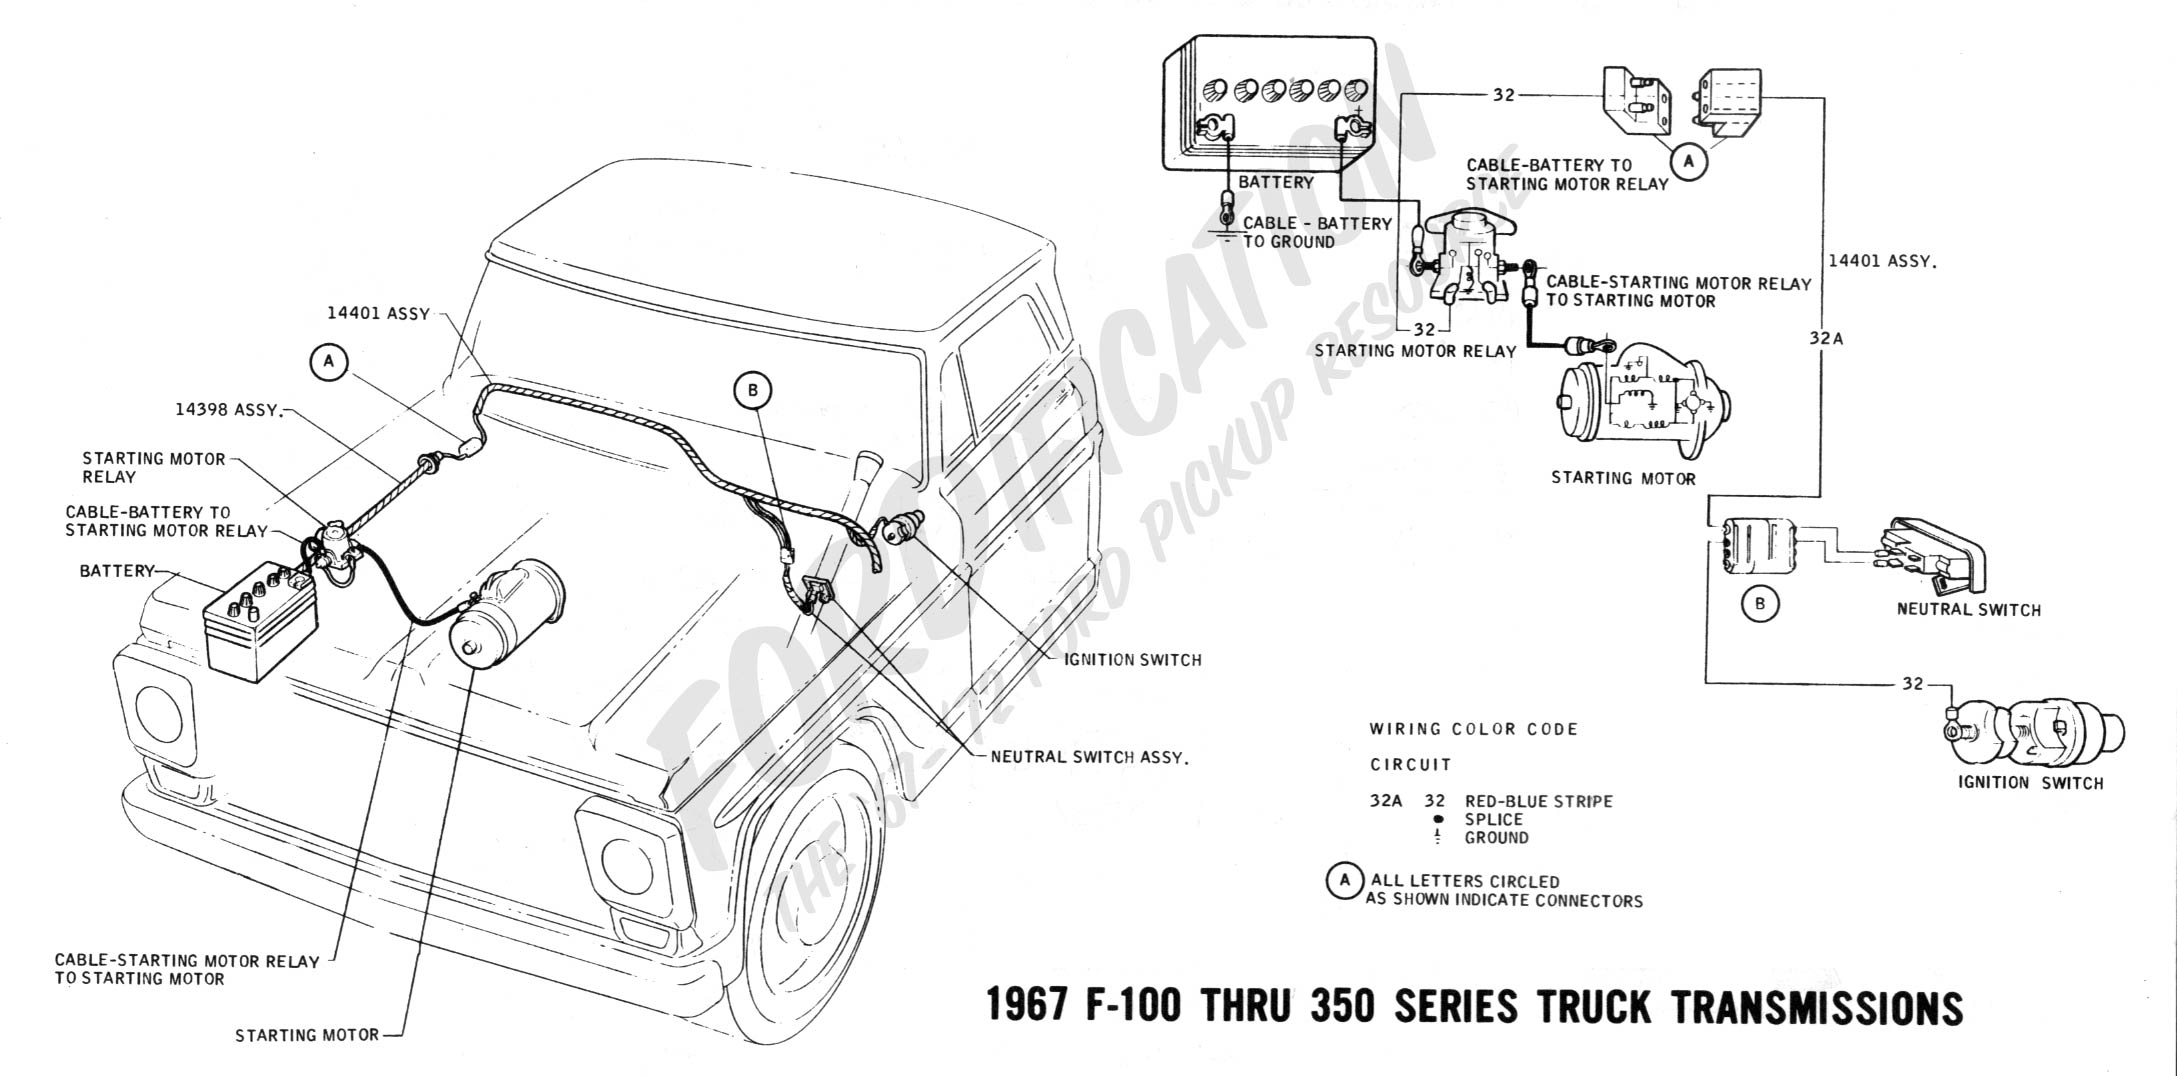 wiring 1967trucktranny 1978 ford starter solenoid wiring diagram circuit and schematics 1978 ford starter solenoid wiring diagram at virtualis.co